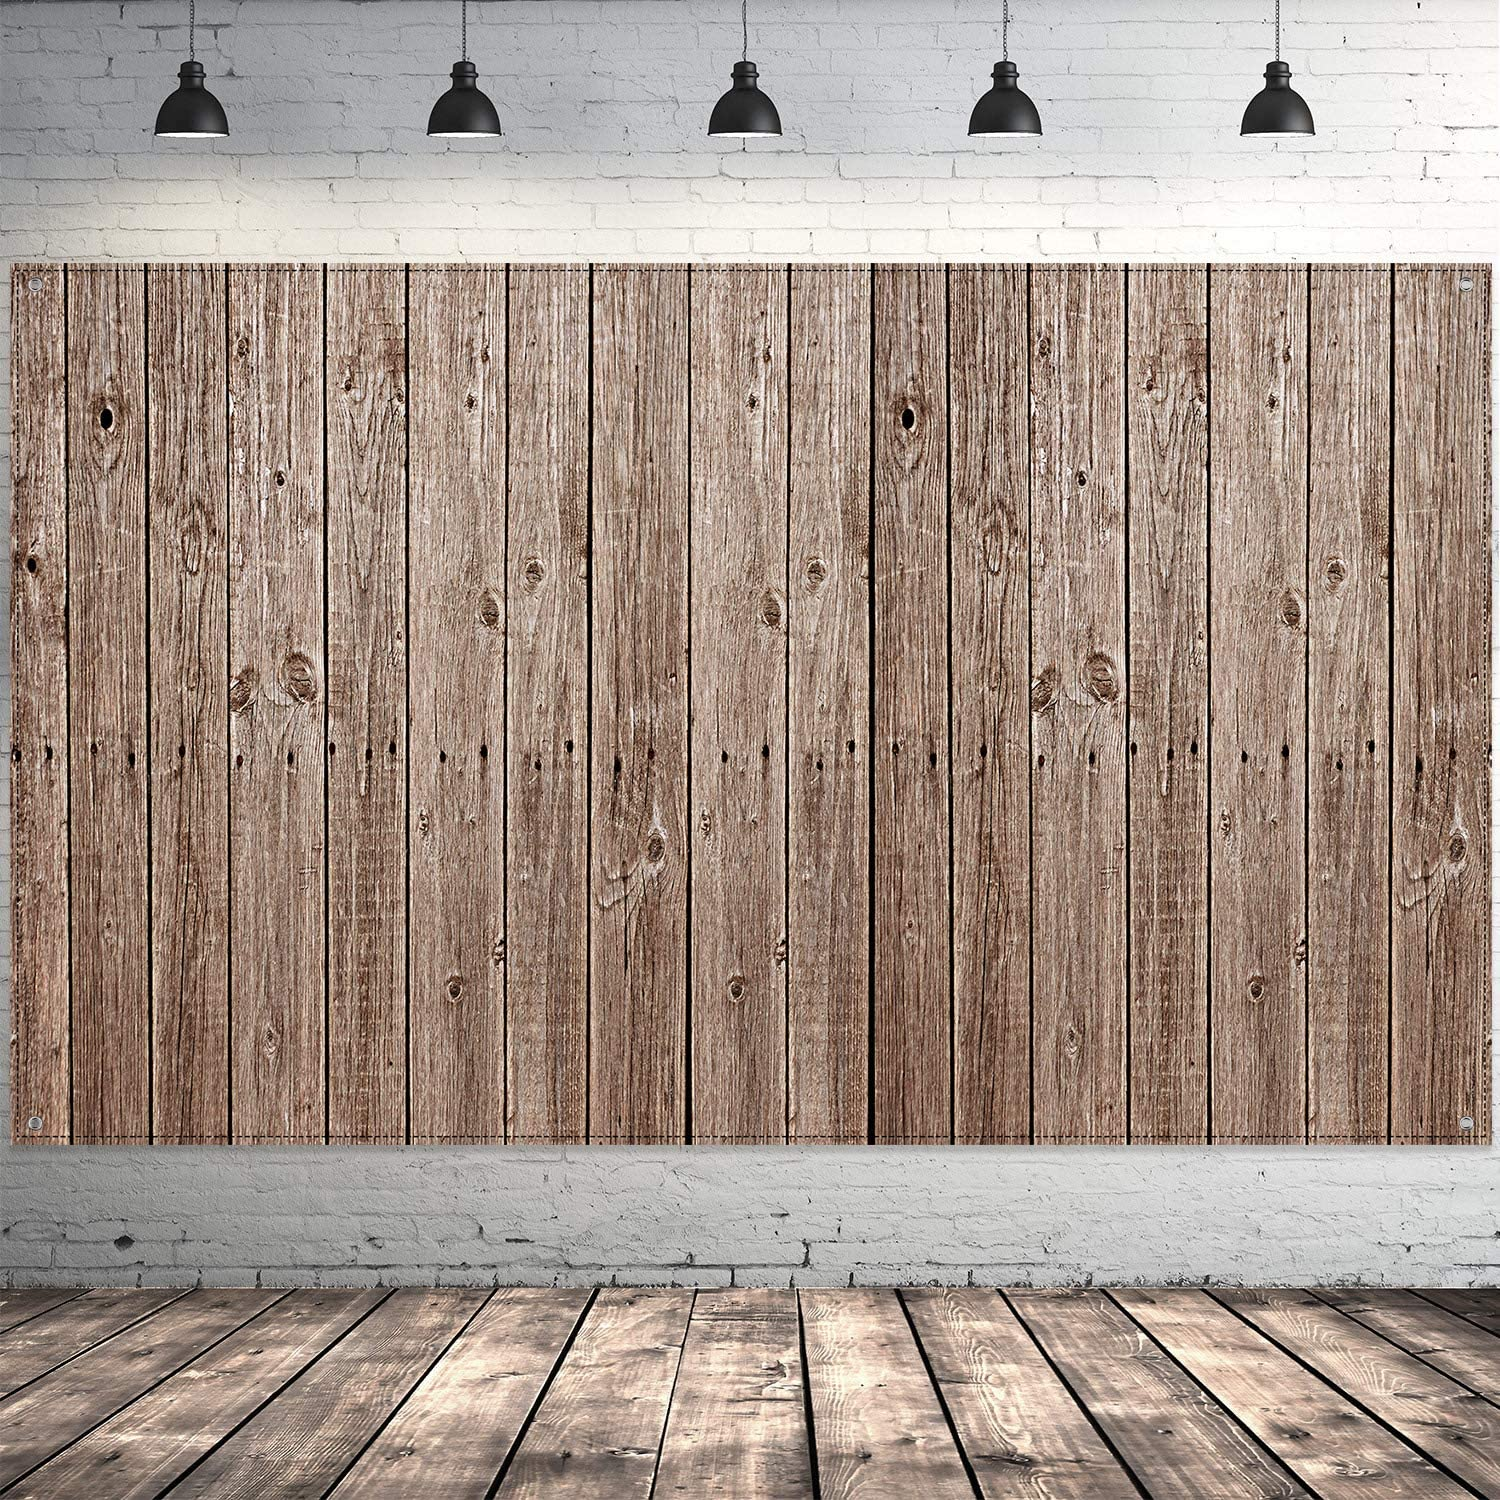 Barn Party Backdrop Decorations, Extra Large Rustic Wood Sign Barn Siding Backdrop Wood Photo Booth Wood Background for Barnyard Party Supplies, 72.8 x 43.3 Inch